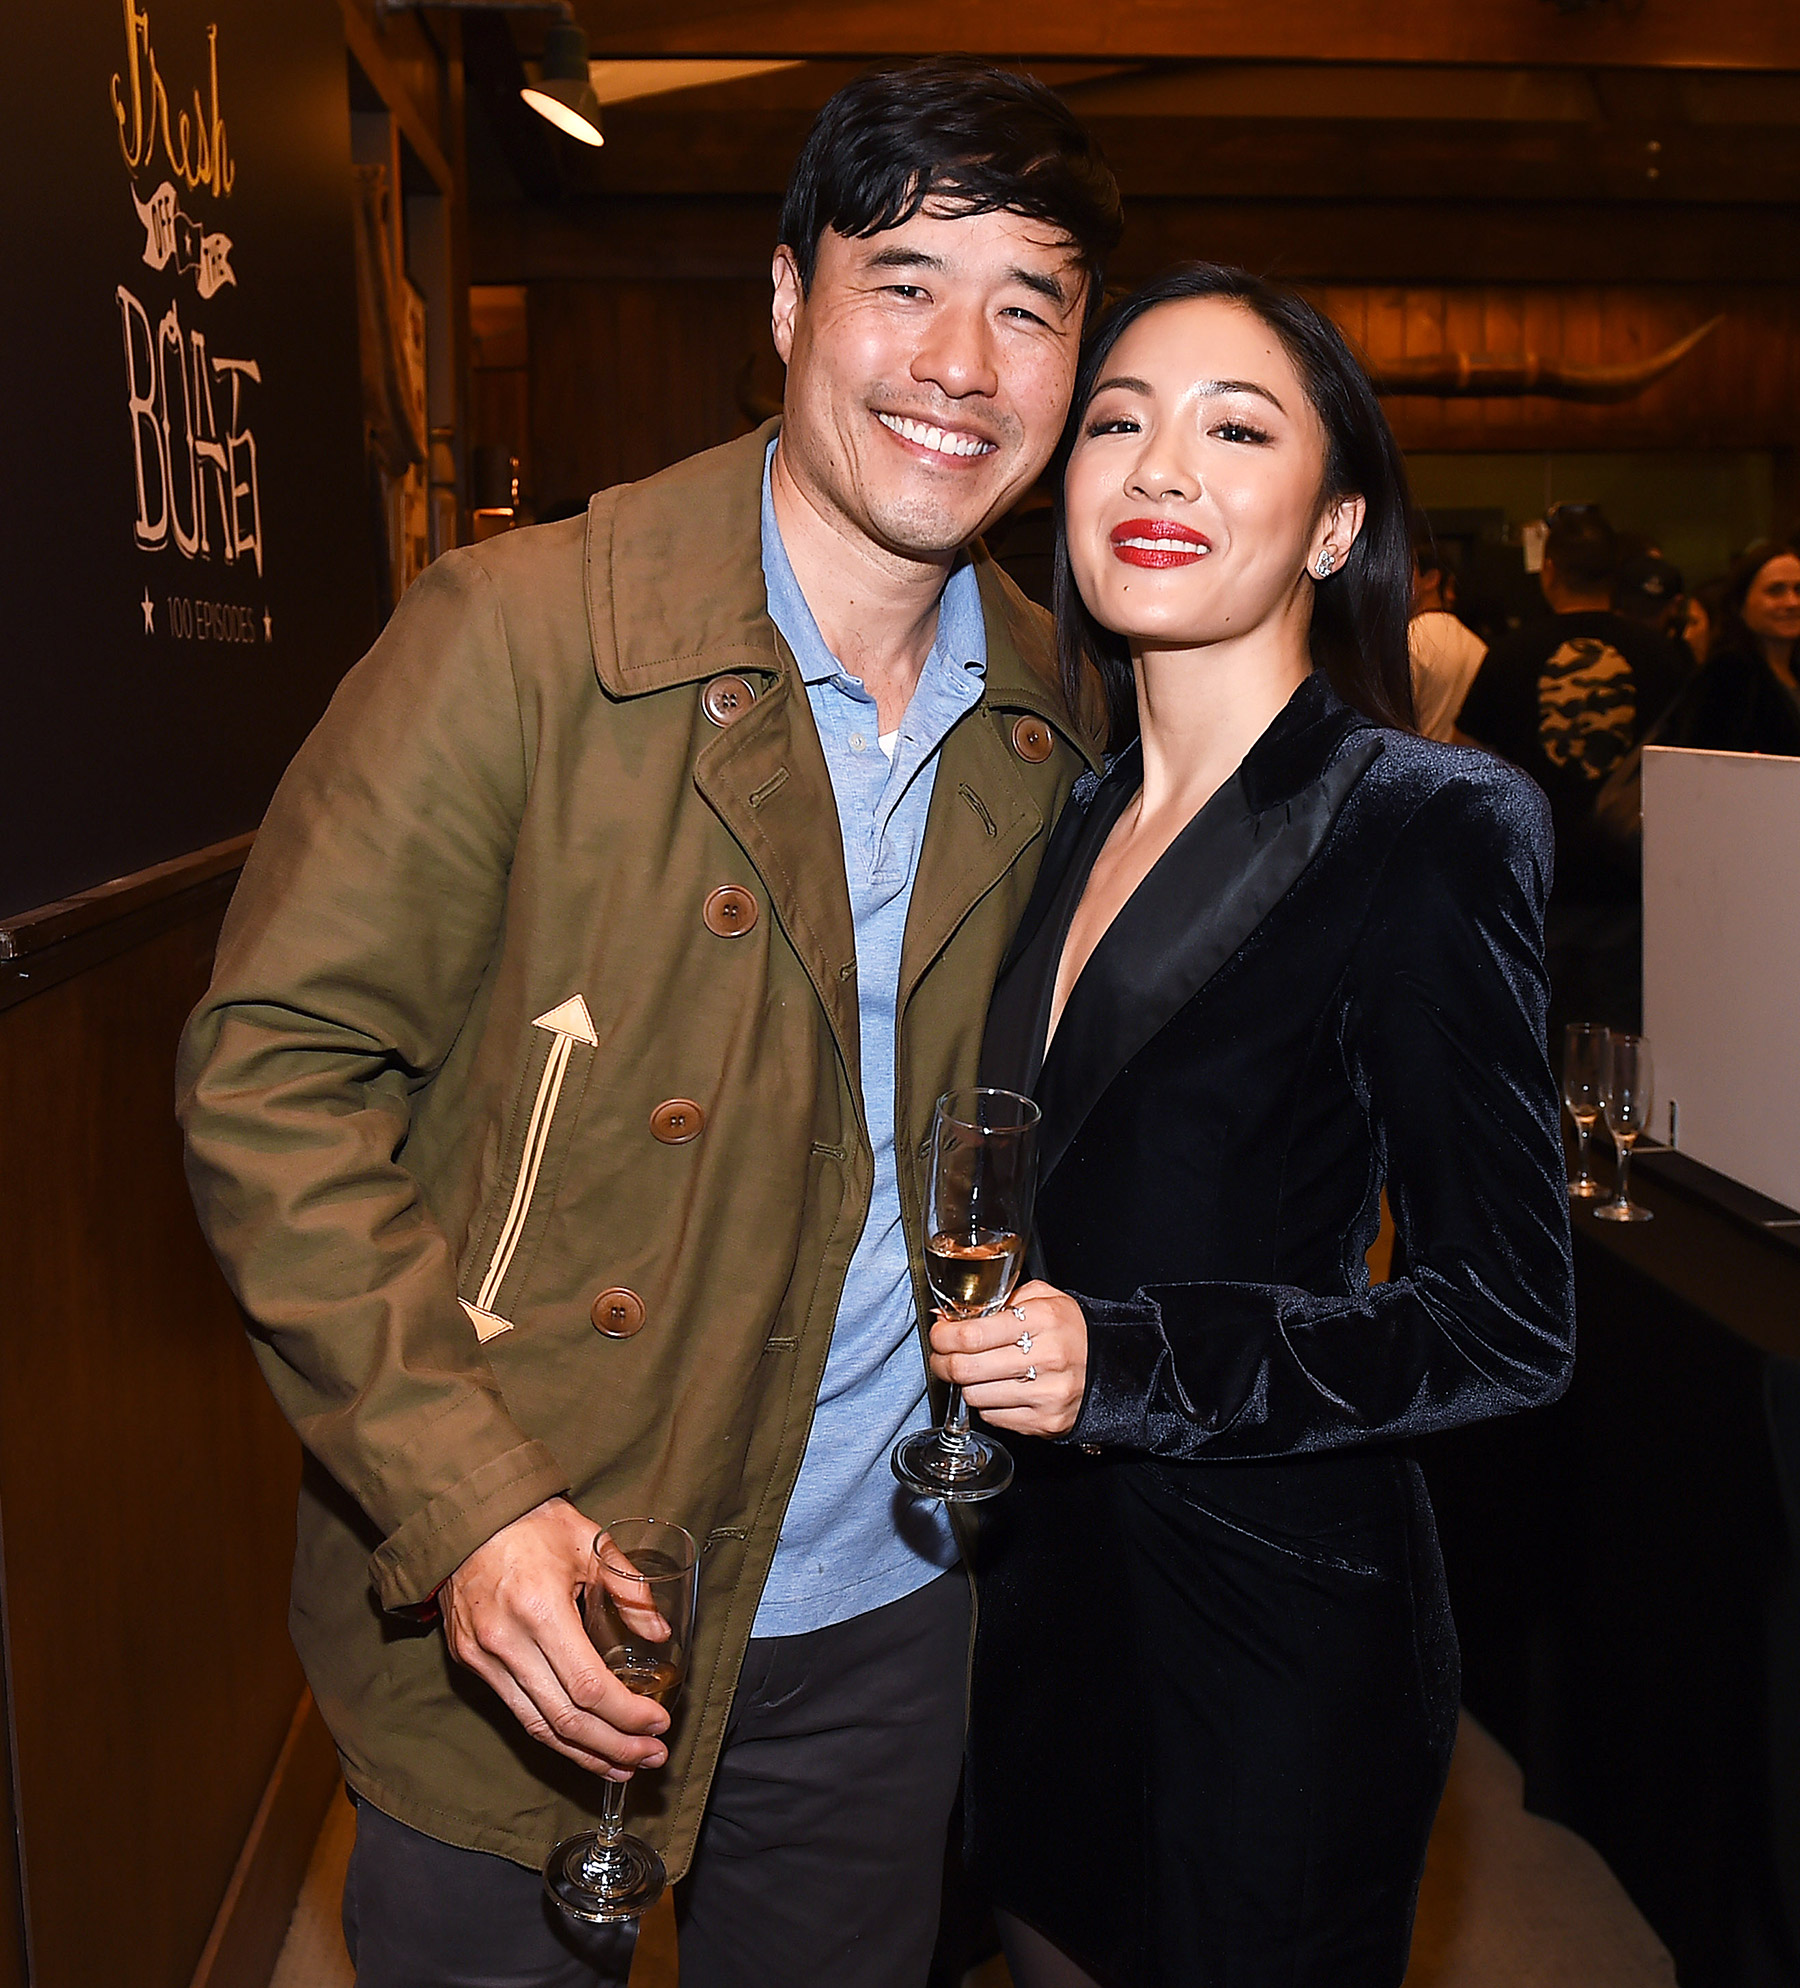 'Fresh Off the Boat' 100th Episode cake cutting, Los Angeles, USA - 27 Feb 2019